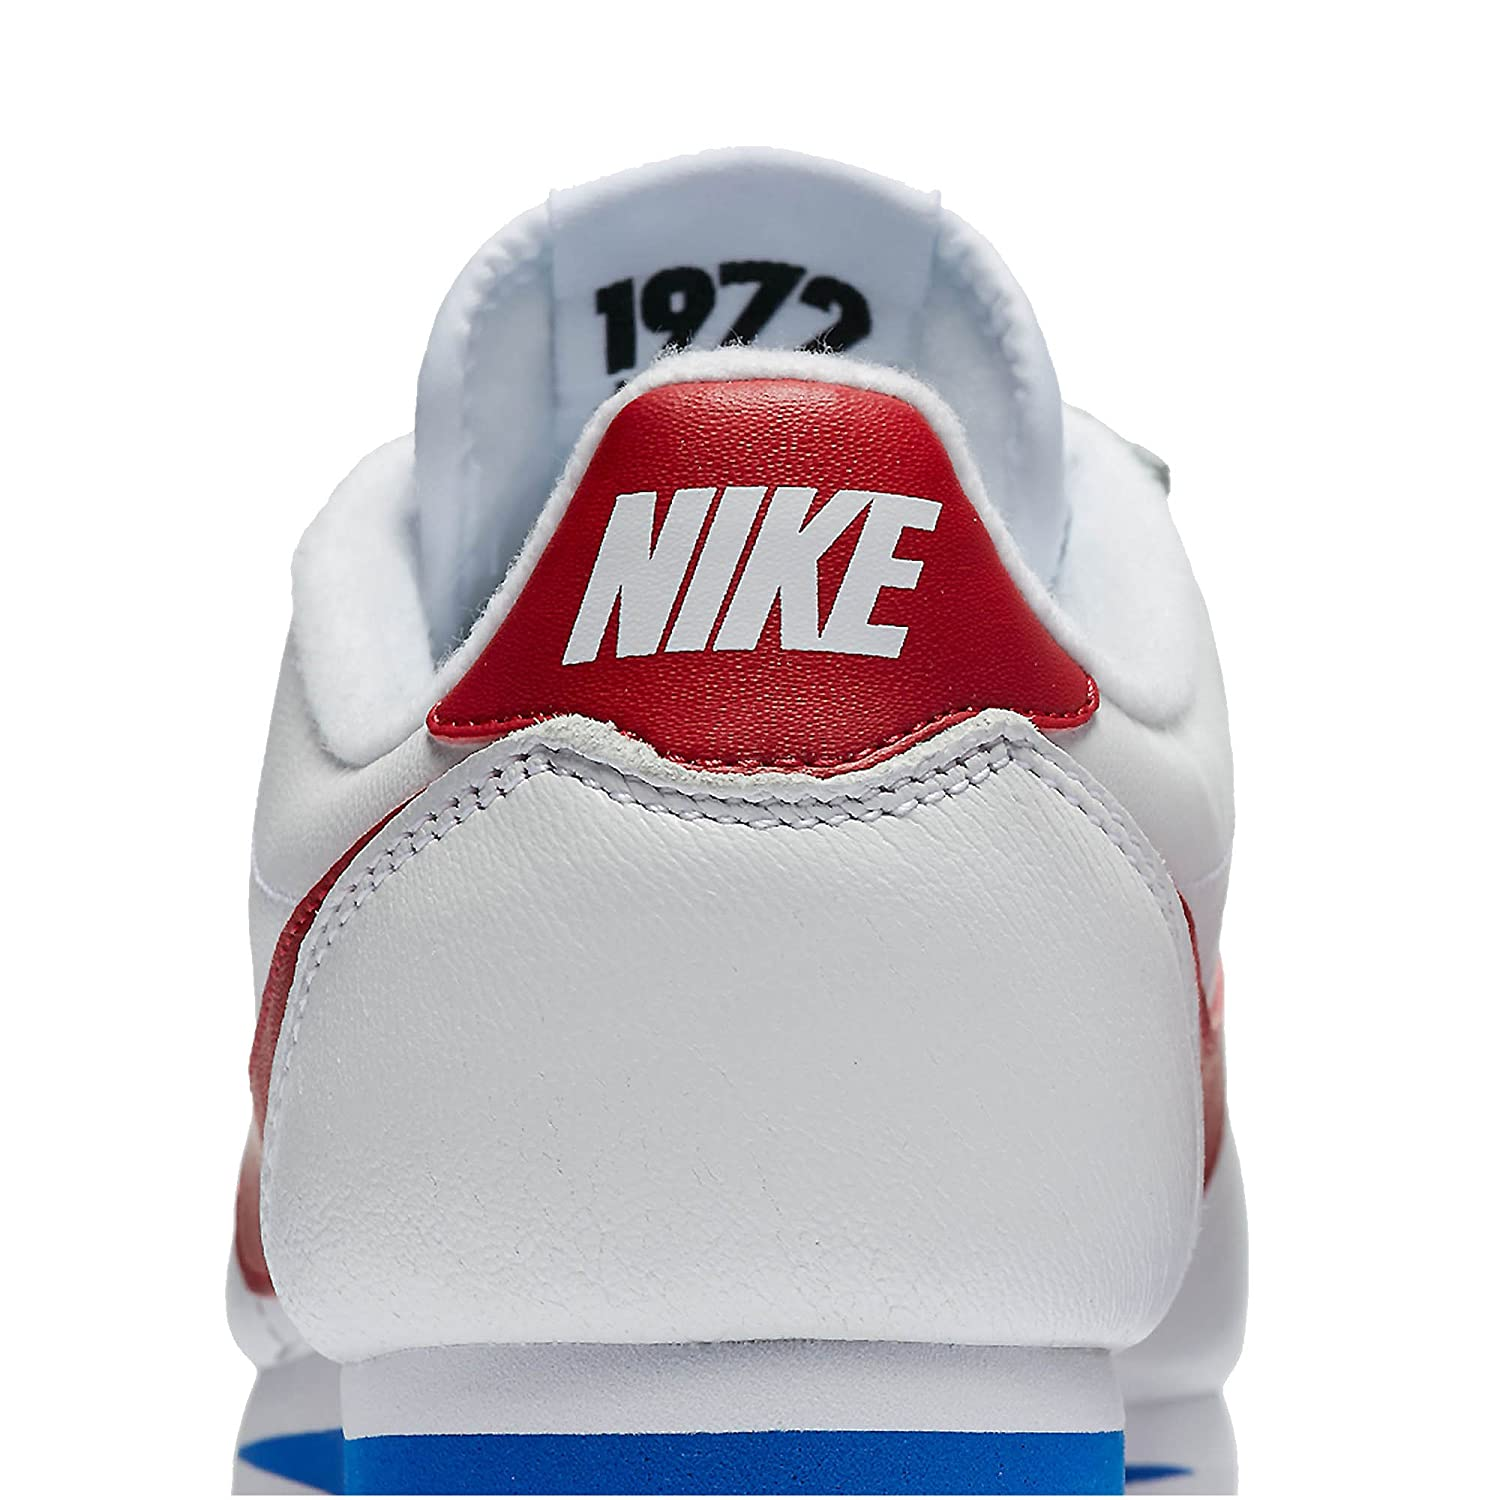 sneakers for cheap cec3d 19073 Nike Women s Classic Cortez Premium Shoe White Varsity Royal Varsity Red  (9.5)  Amazon.co.uk  Shoes   Bags